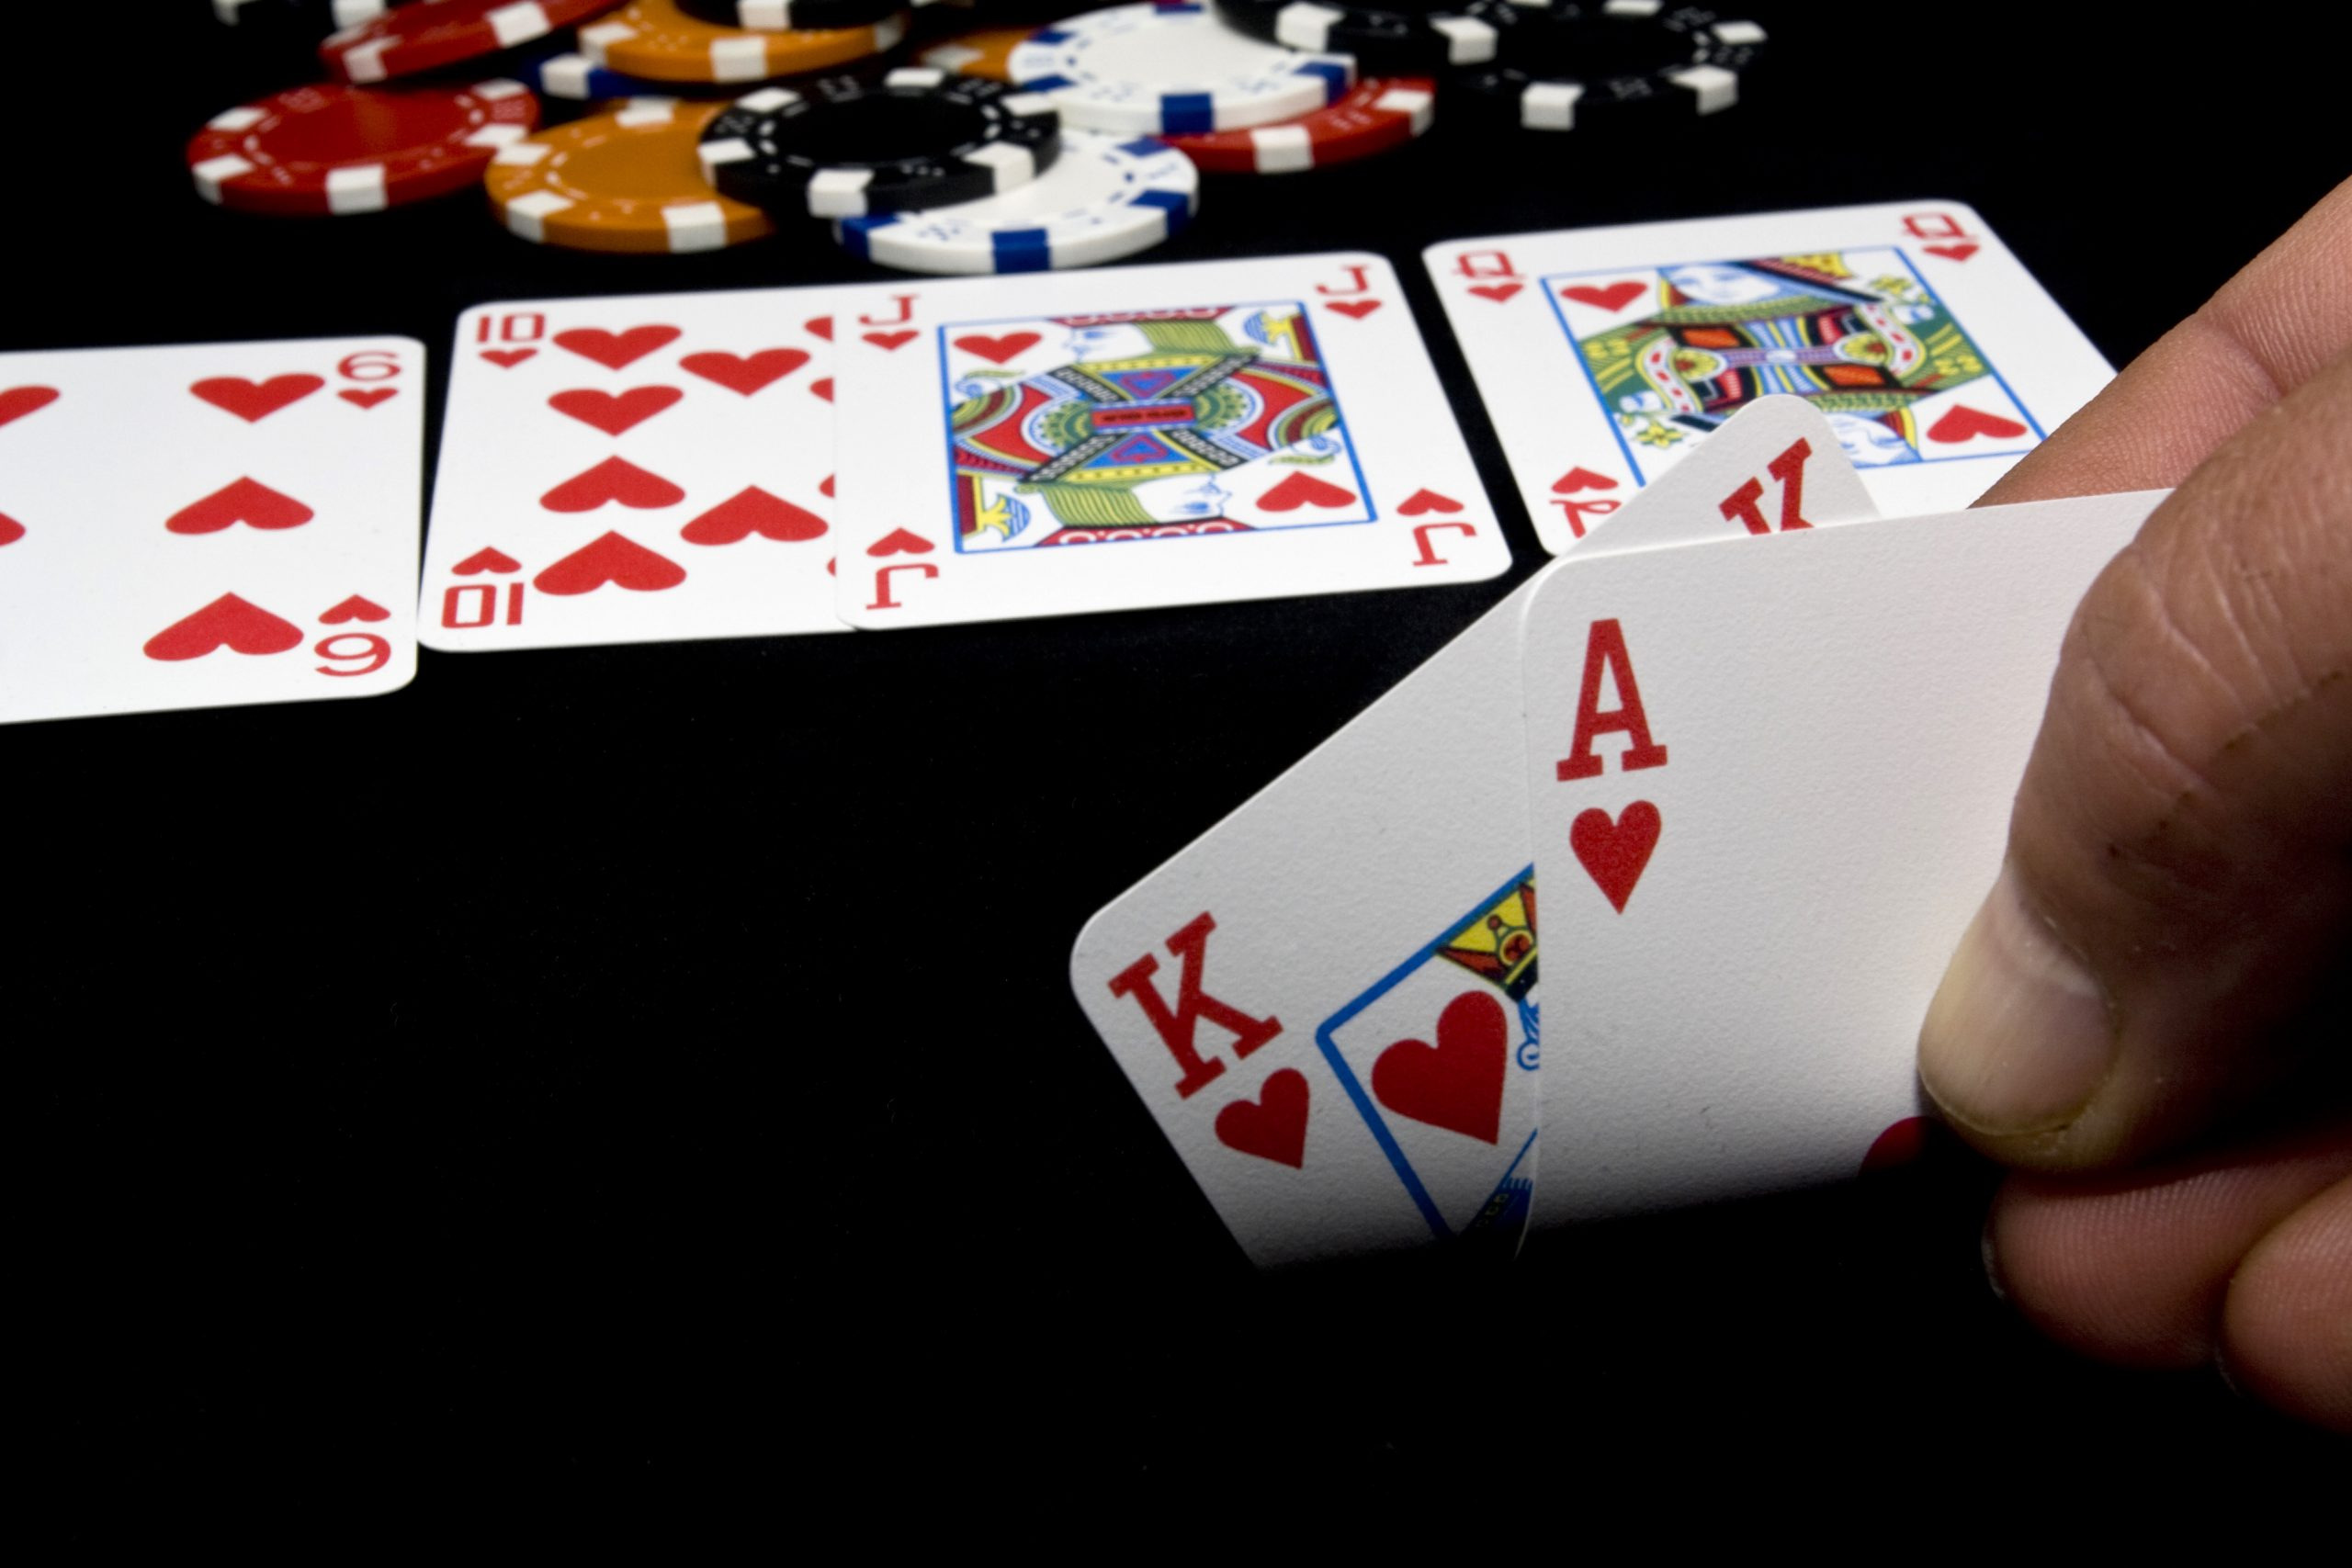 Online gambling law in cambodia